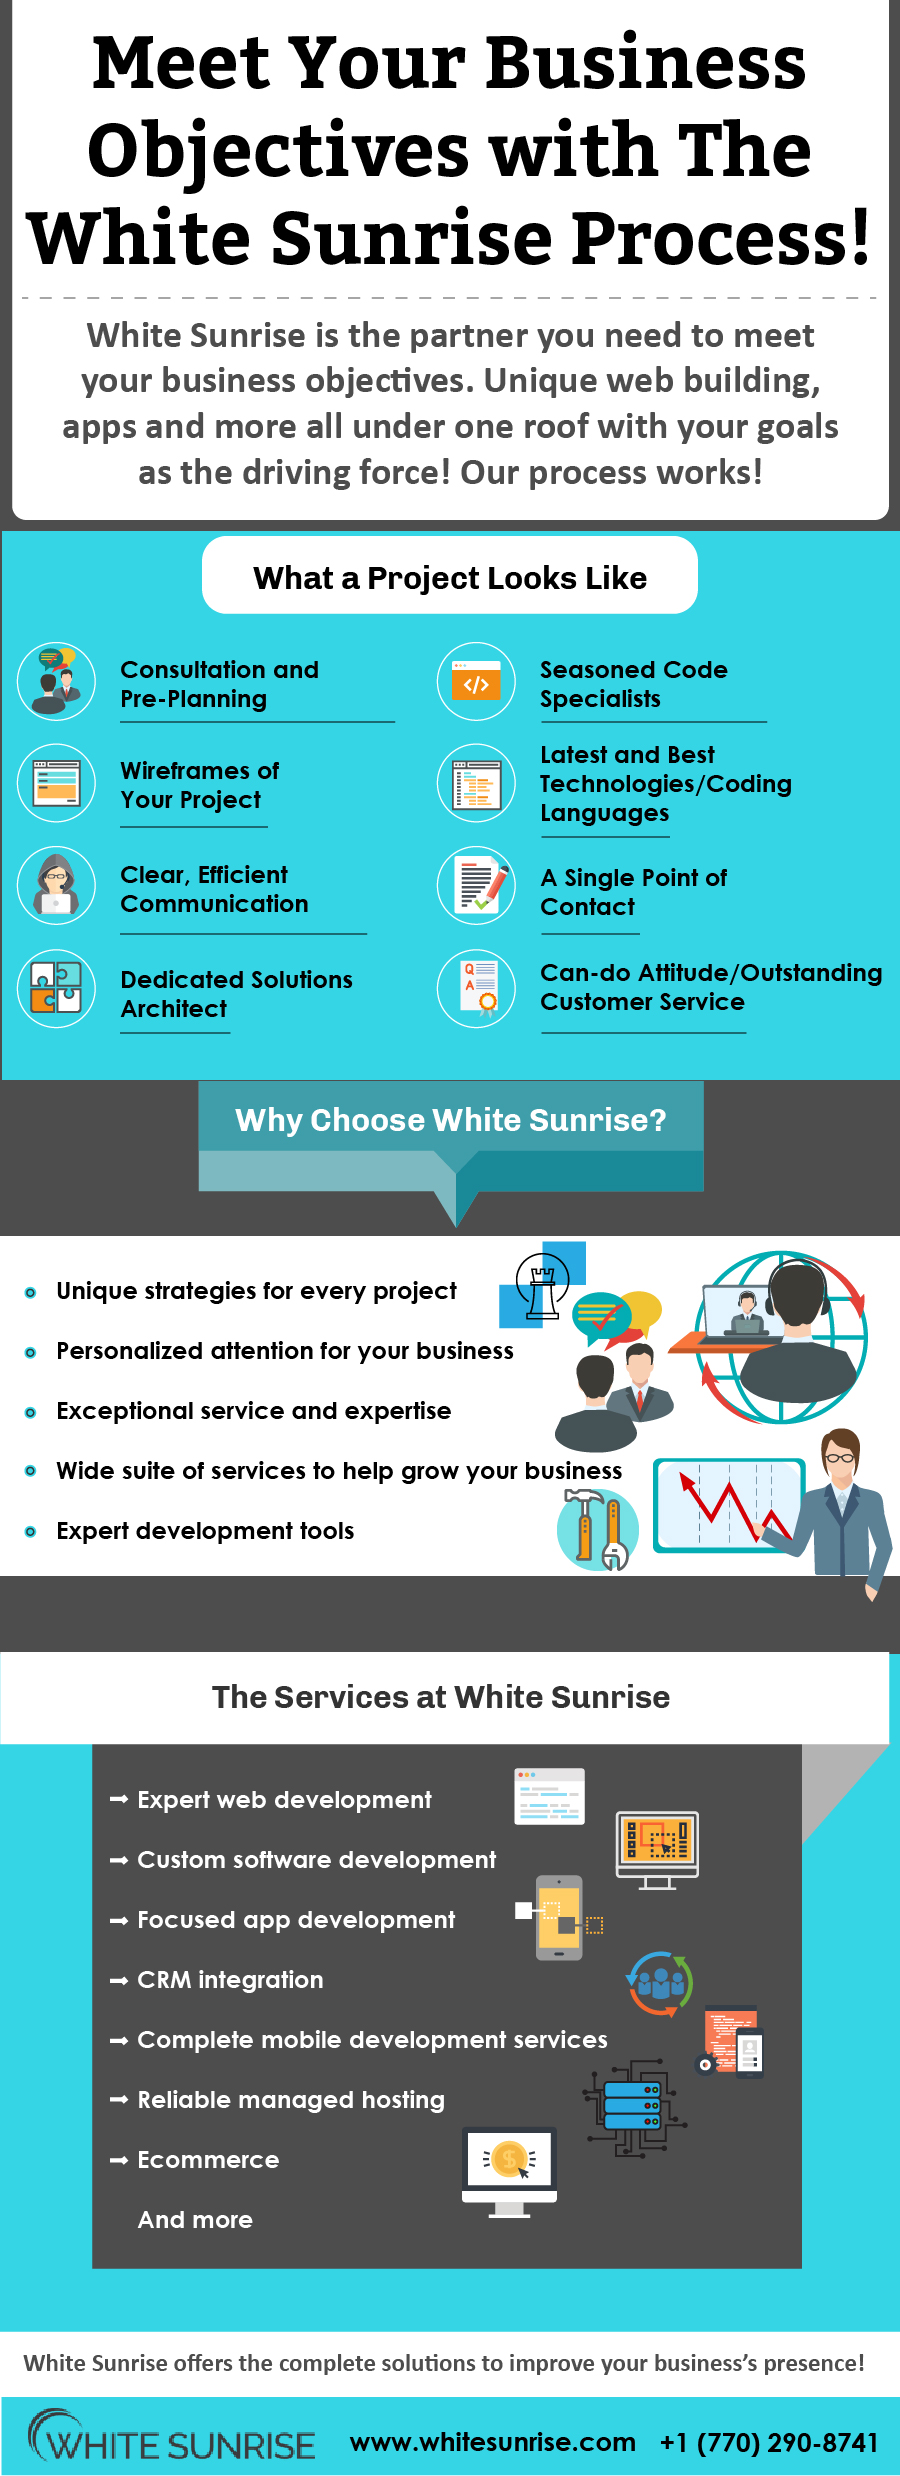 Meet Your Business Objectives With The White Sunrise Process